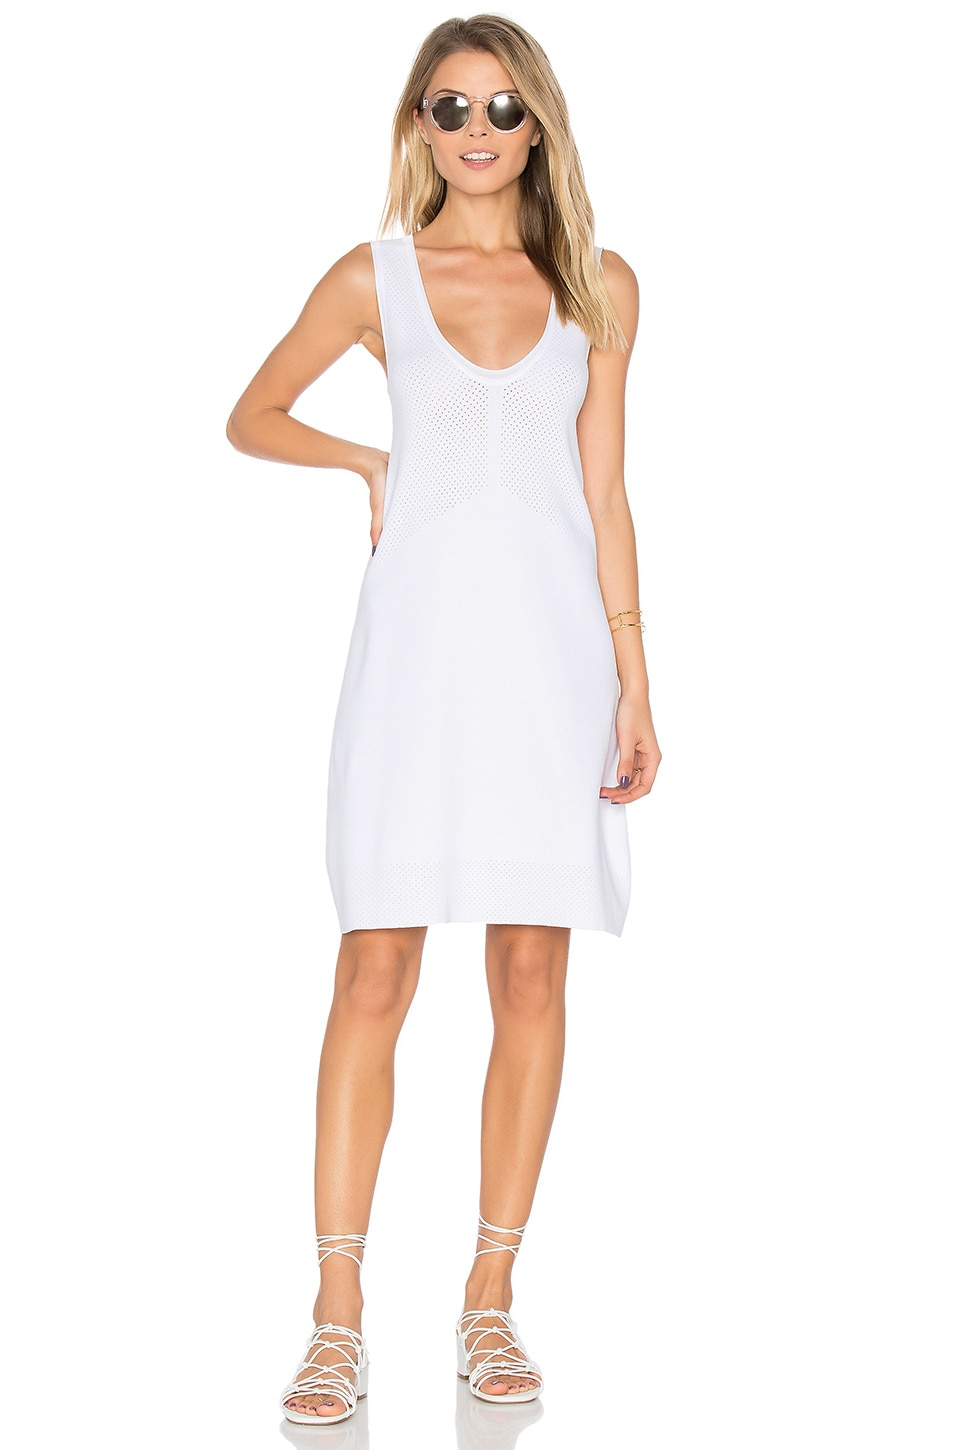 V Neck Tank Dress by LEO & SAGE